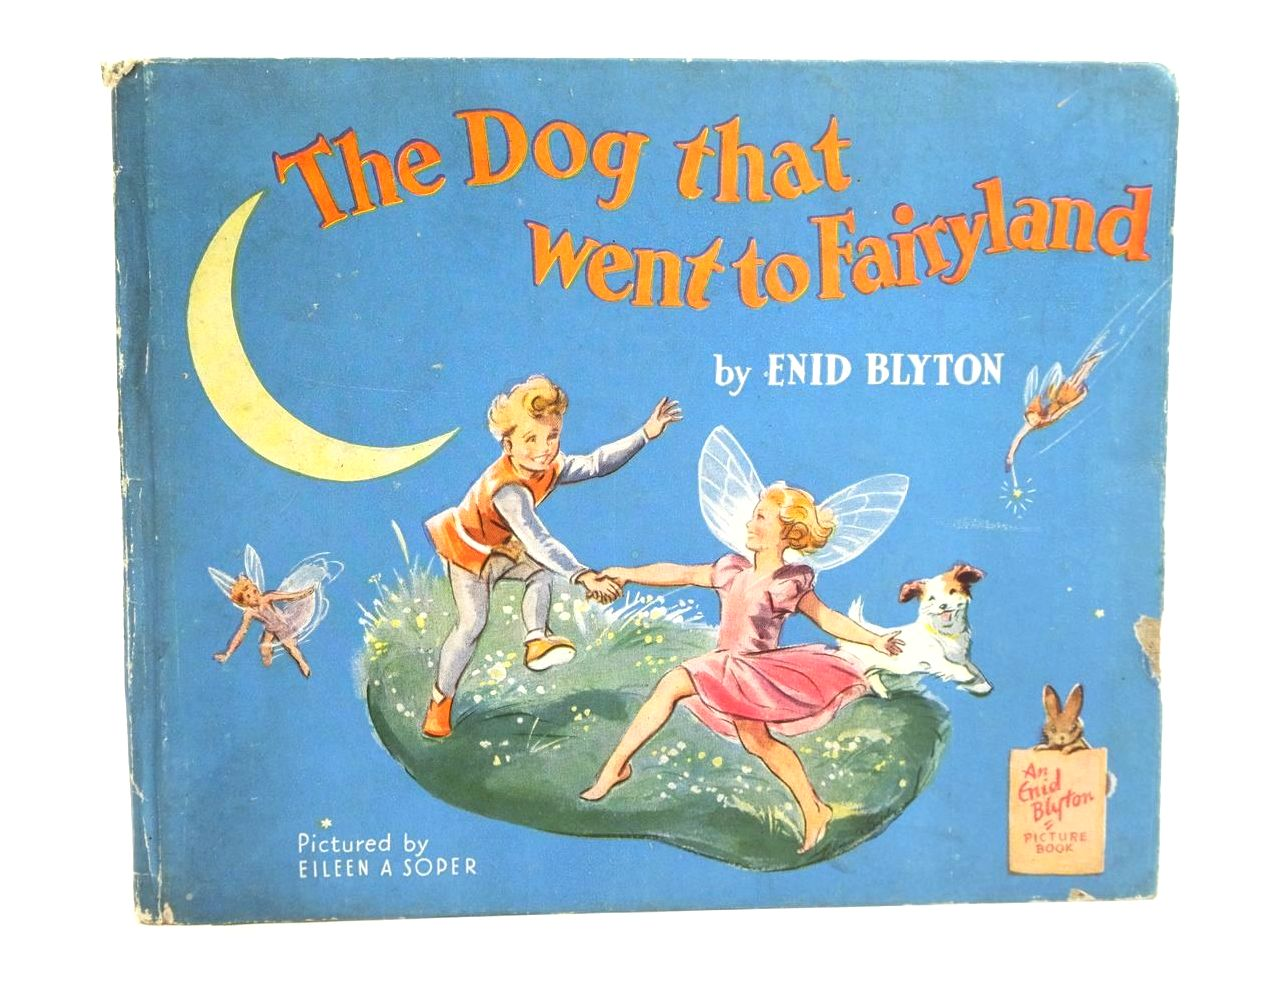 Photo of THE DOG THAT WENT TO FAIRYLAND written by Blyton, Enid illustrated by Soper, Eileen published by The Brockhampton Book Co. Ltd. (STOCK CODE: 1319928)  for sale by Stella & Rose's Books